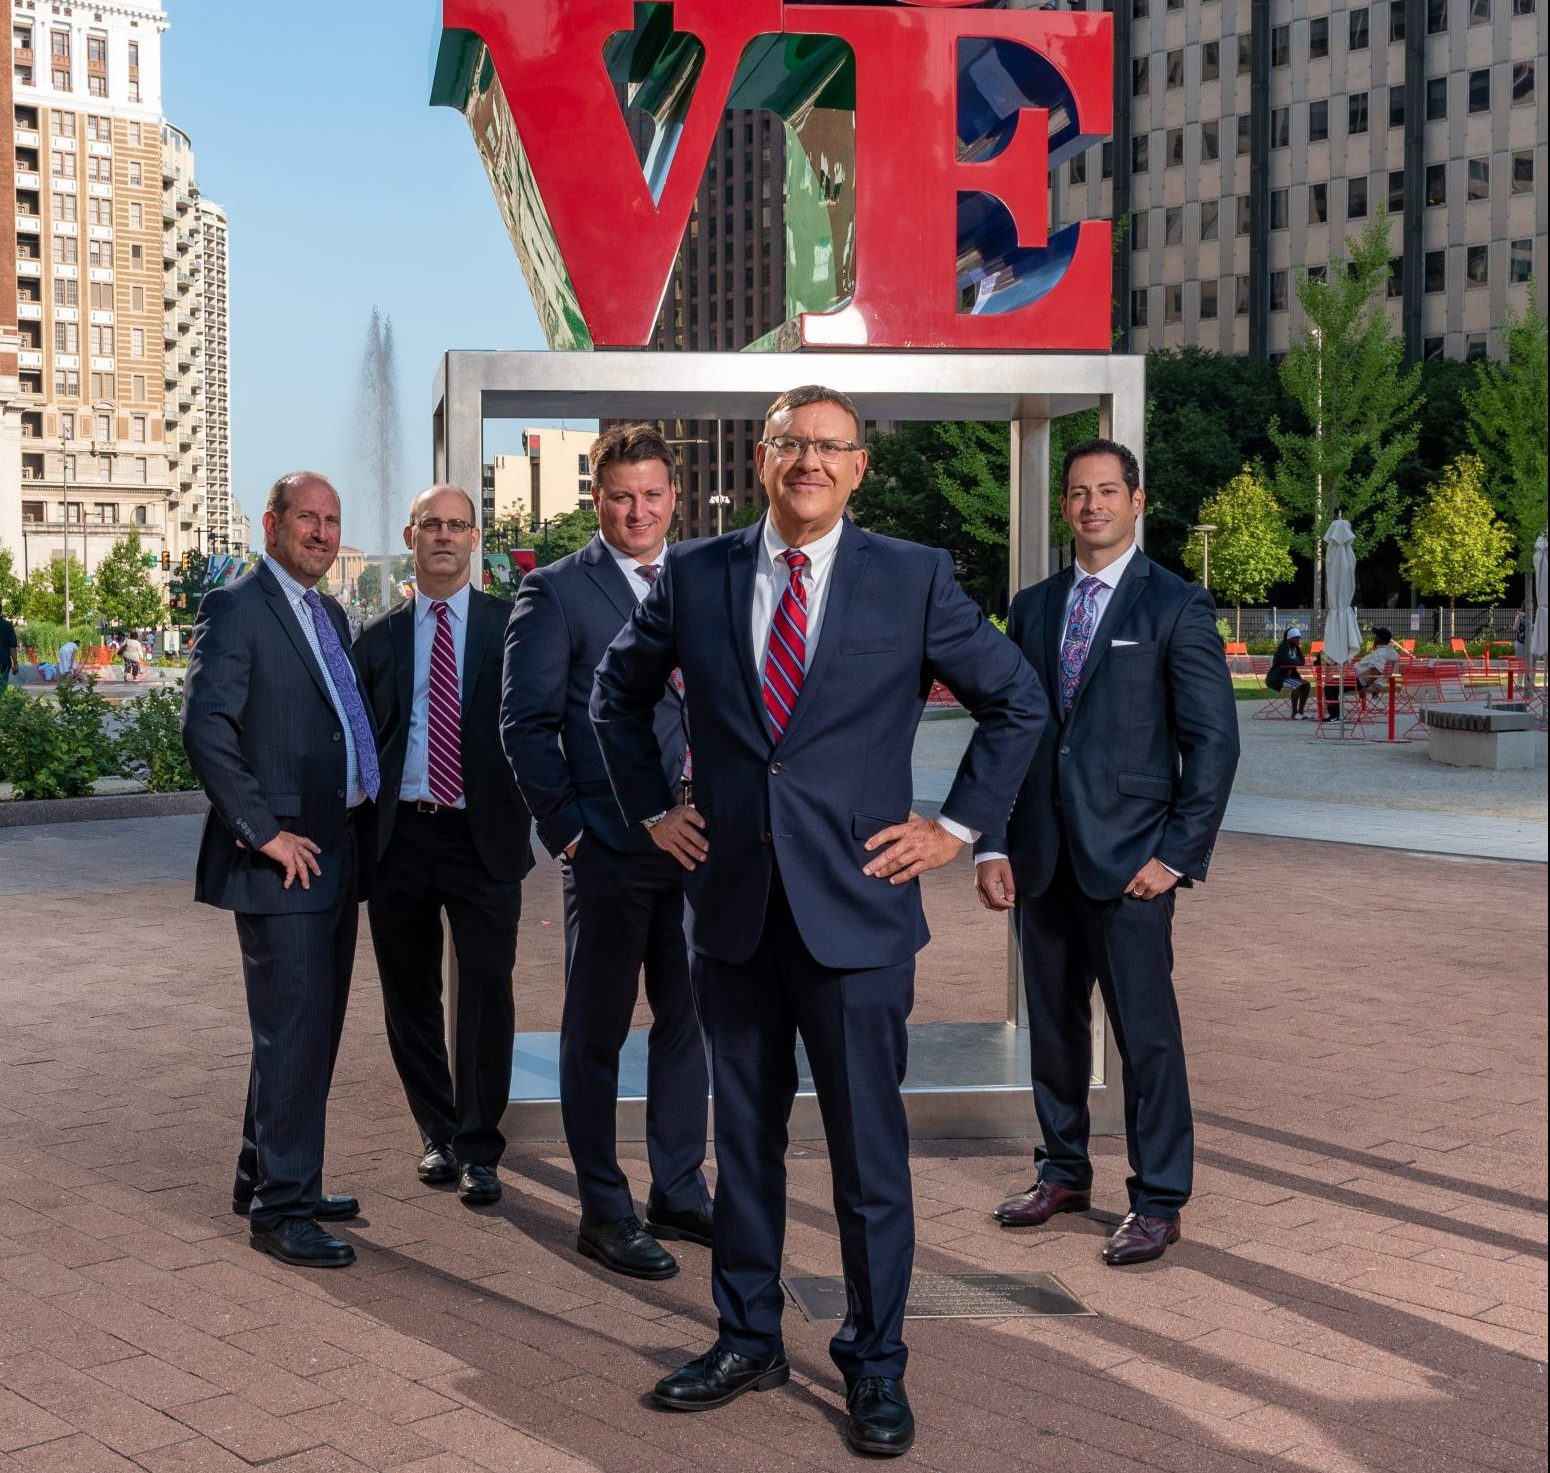 Spear Greenfield Personal Injury Attorneys legal team in front of Love Statue in Philly's Love Park